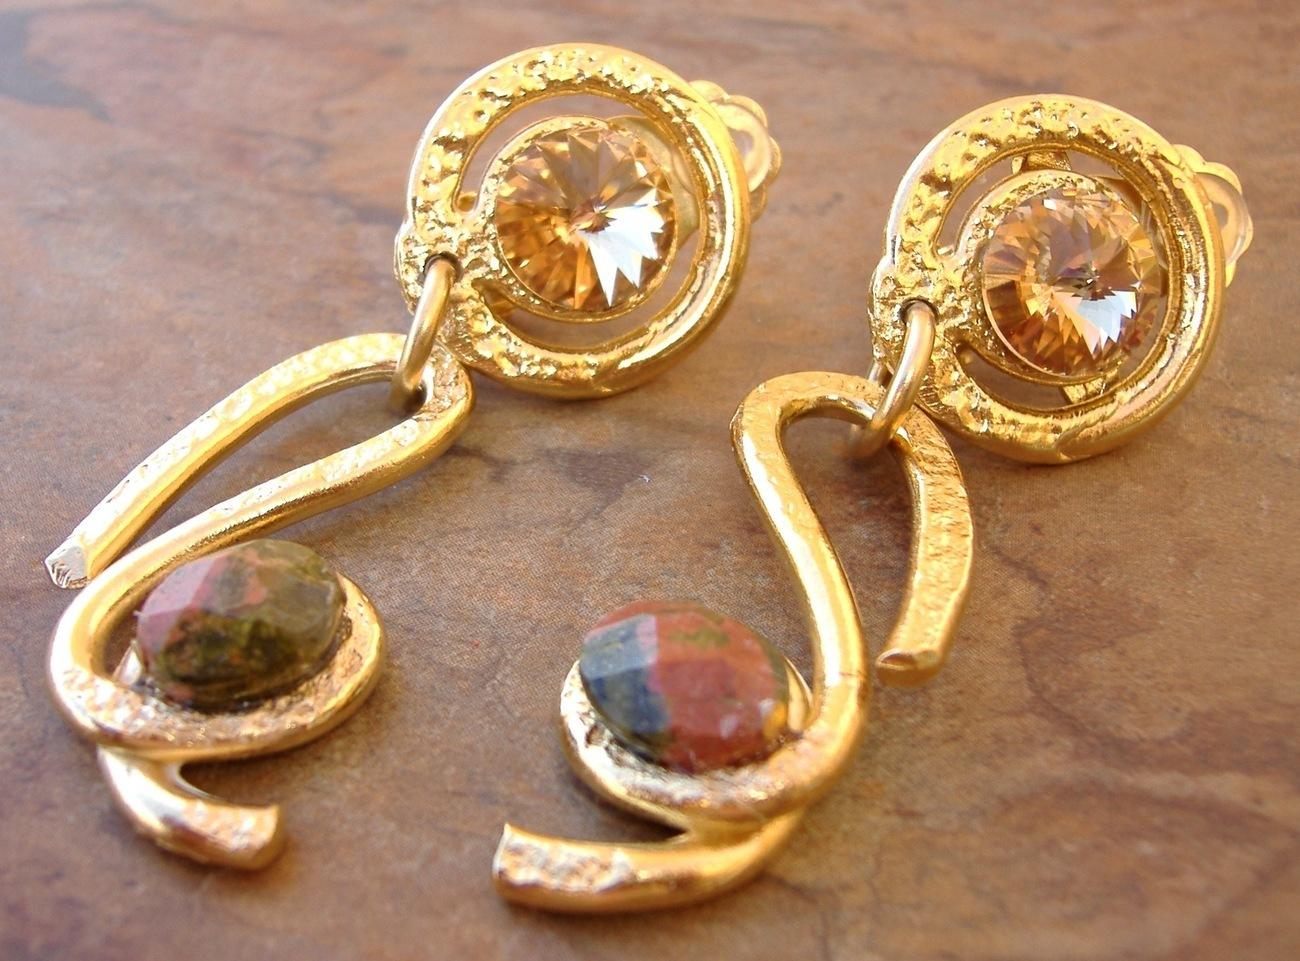 Amber Crystal Dangle Earrings Handcrafted Semi Precious Stone Gold Clip-On